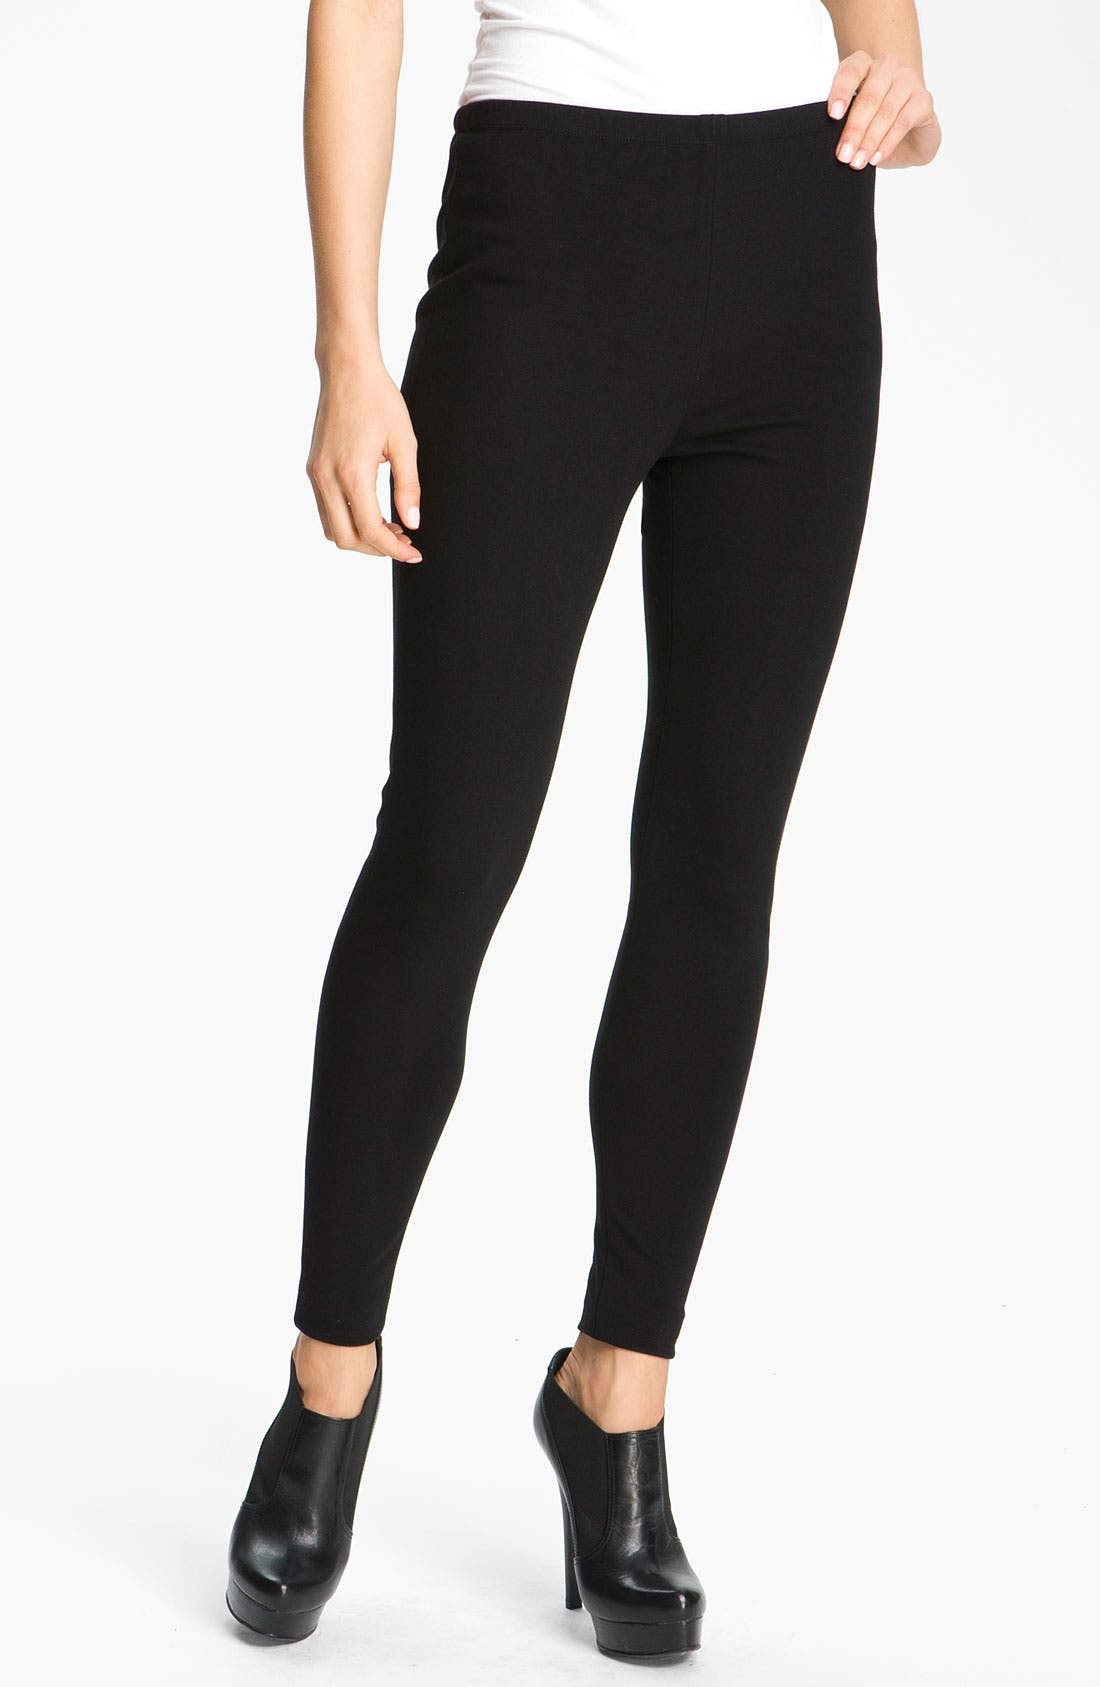 Main Image - Lafayette 148 New York Punto Milano Knit Leggings